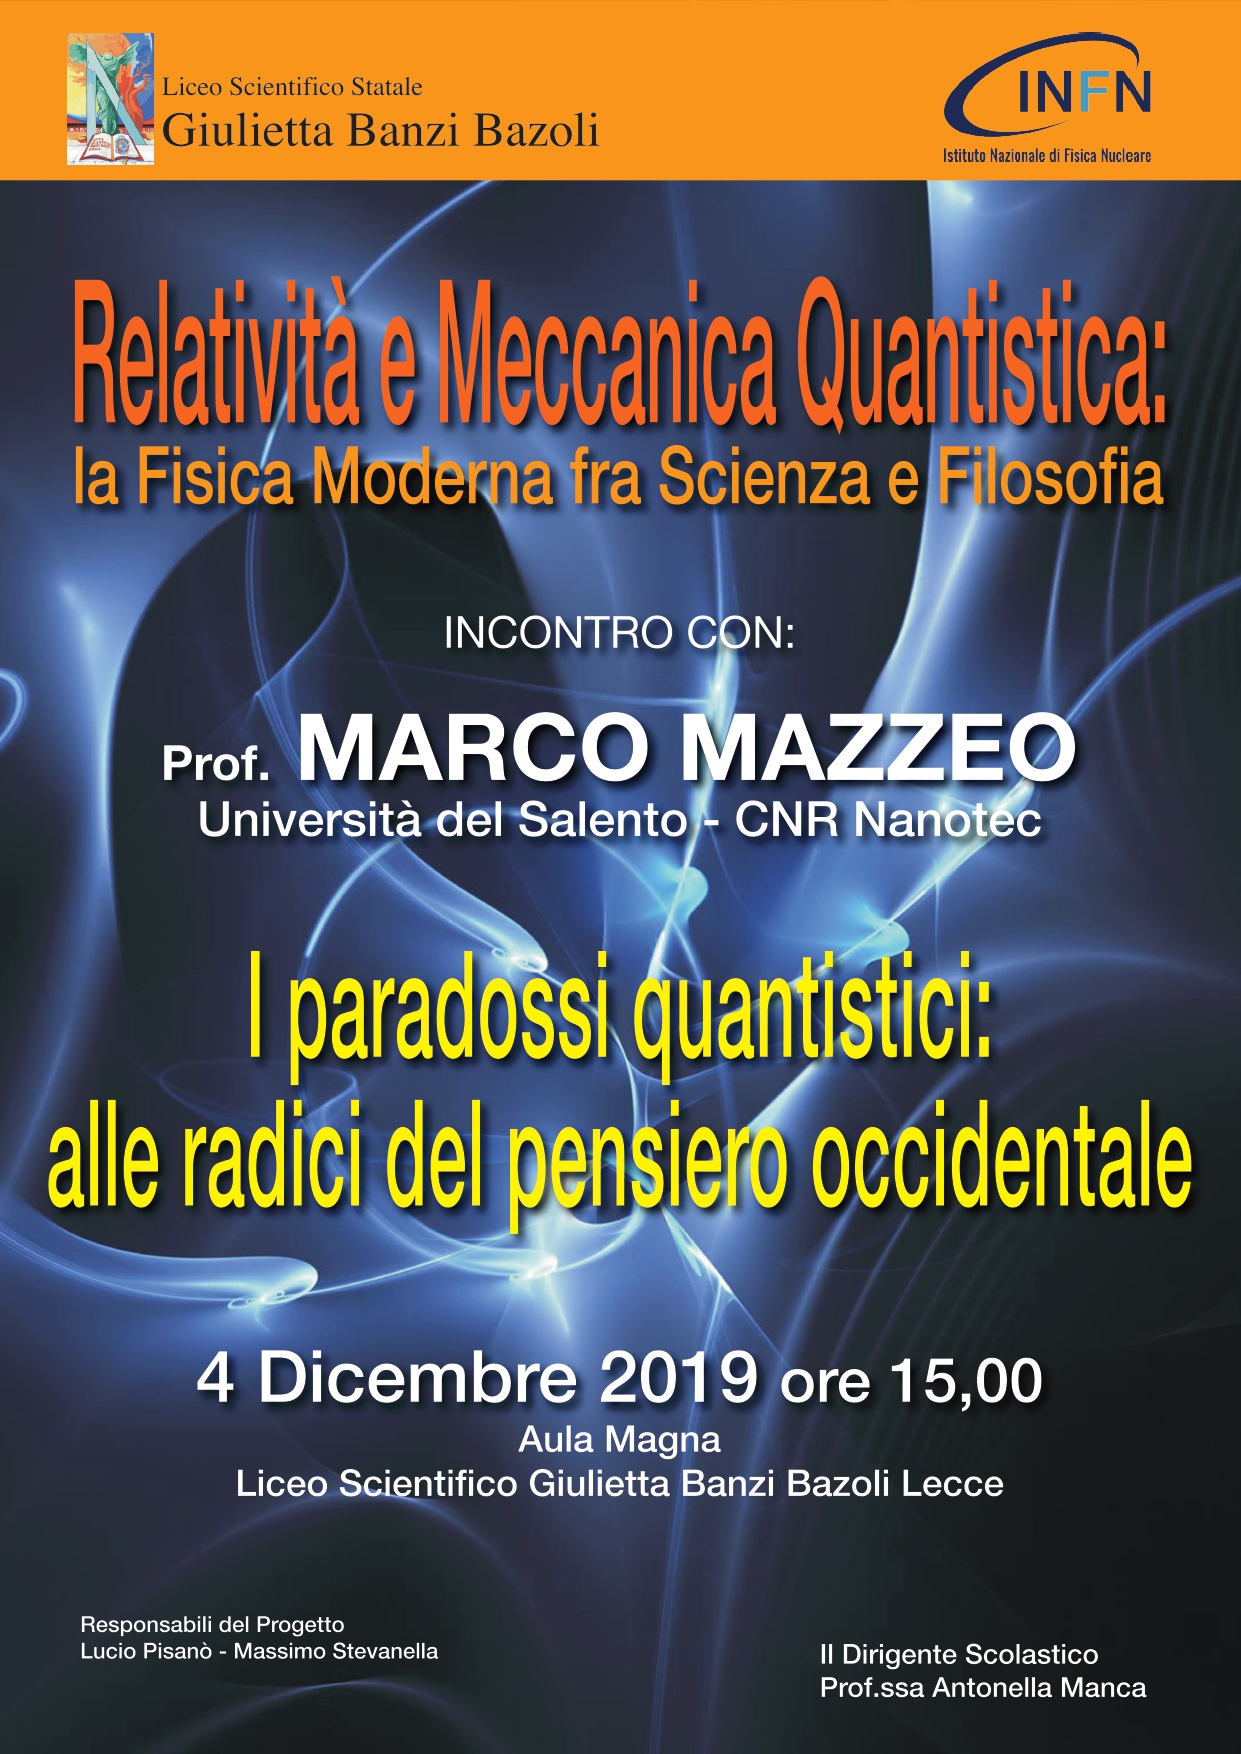 MARCO%20MAZZEO_page-0001.jpg